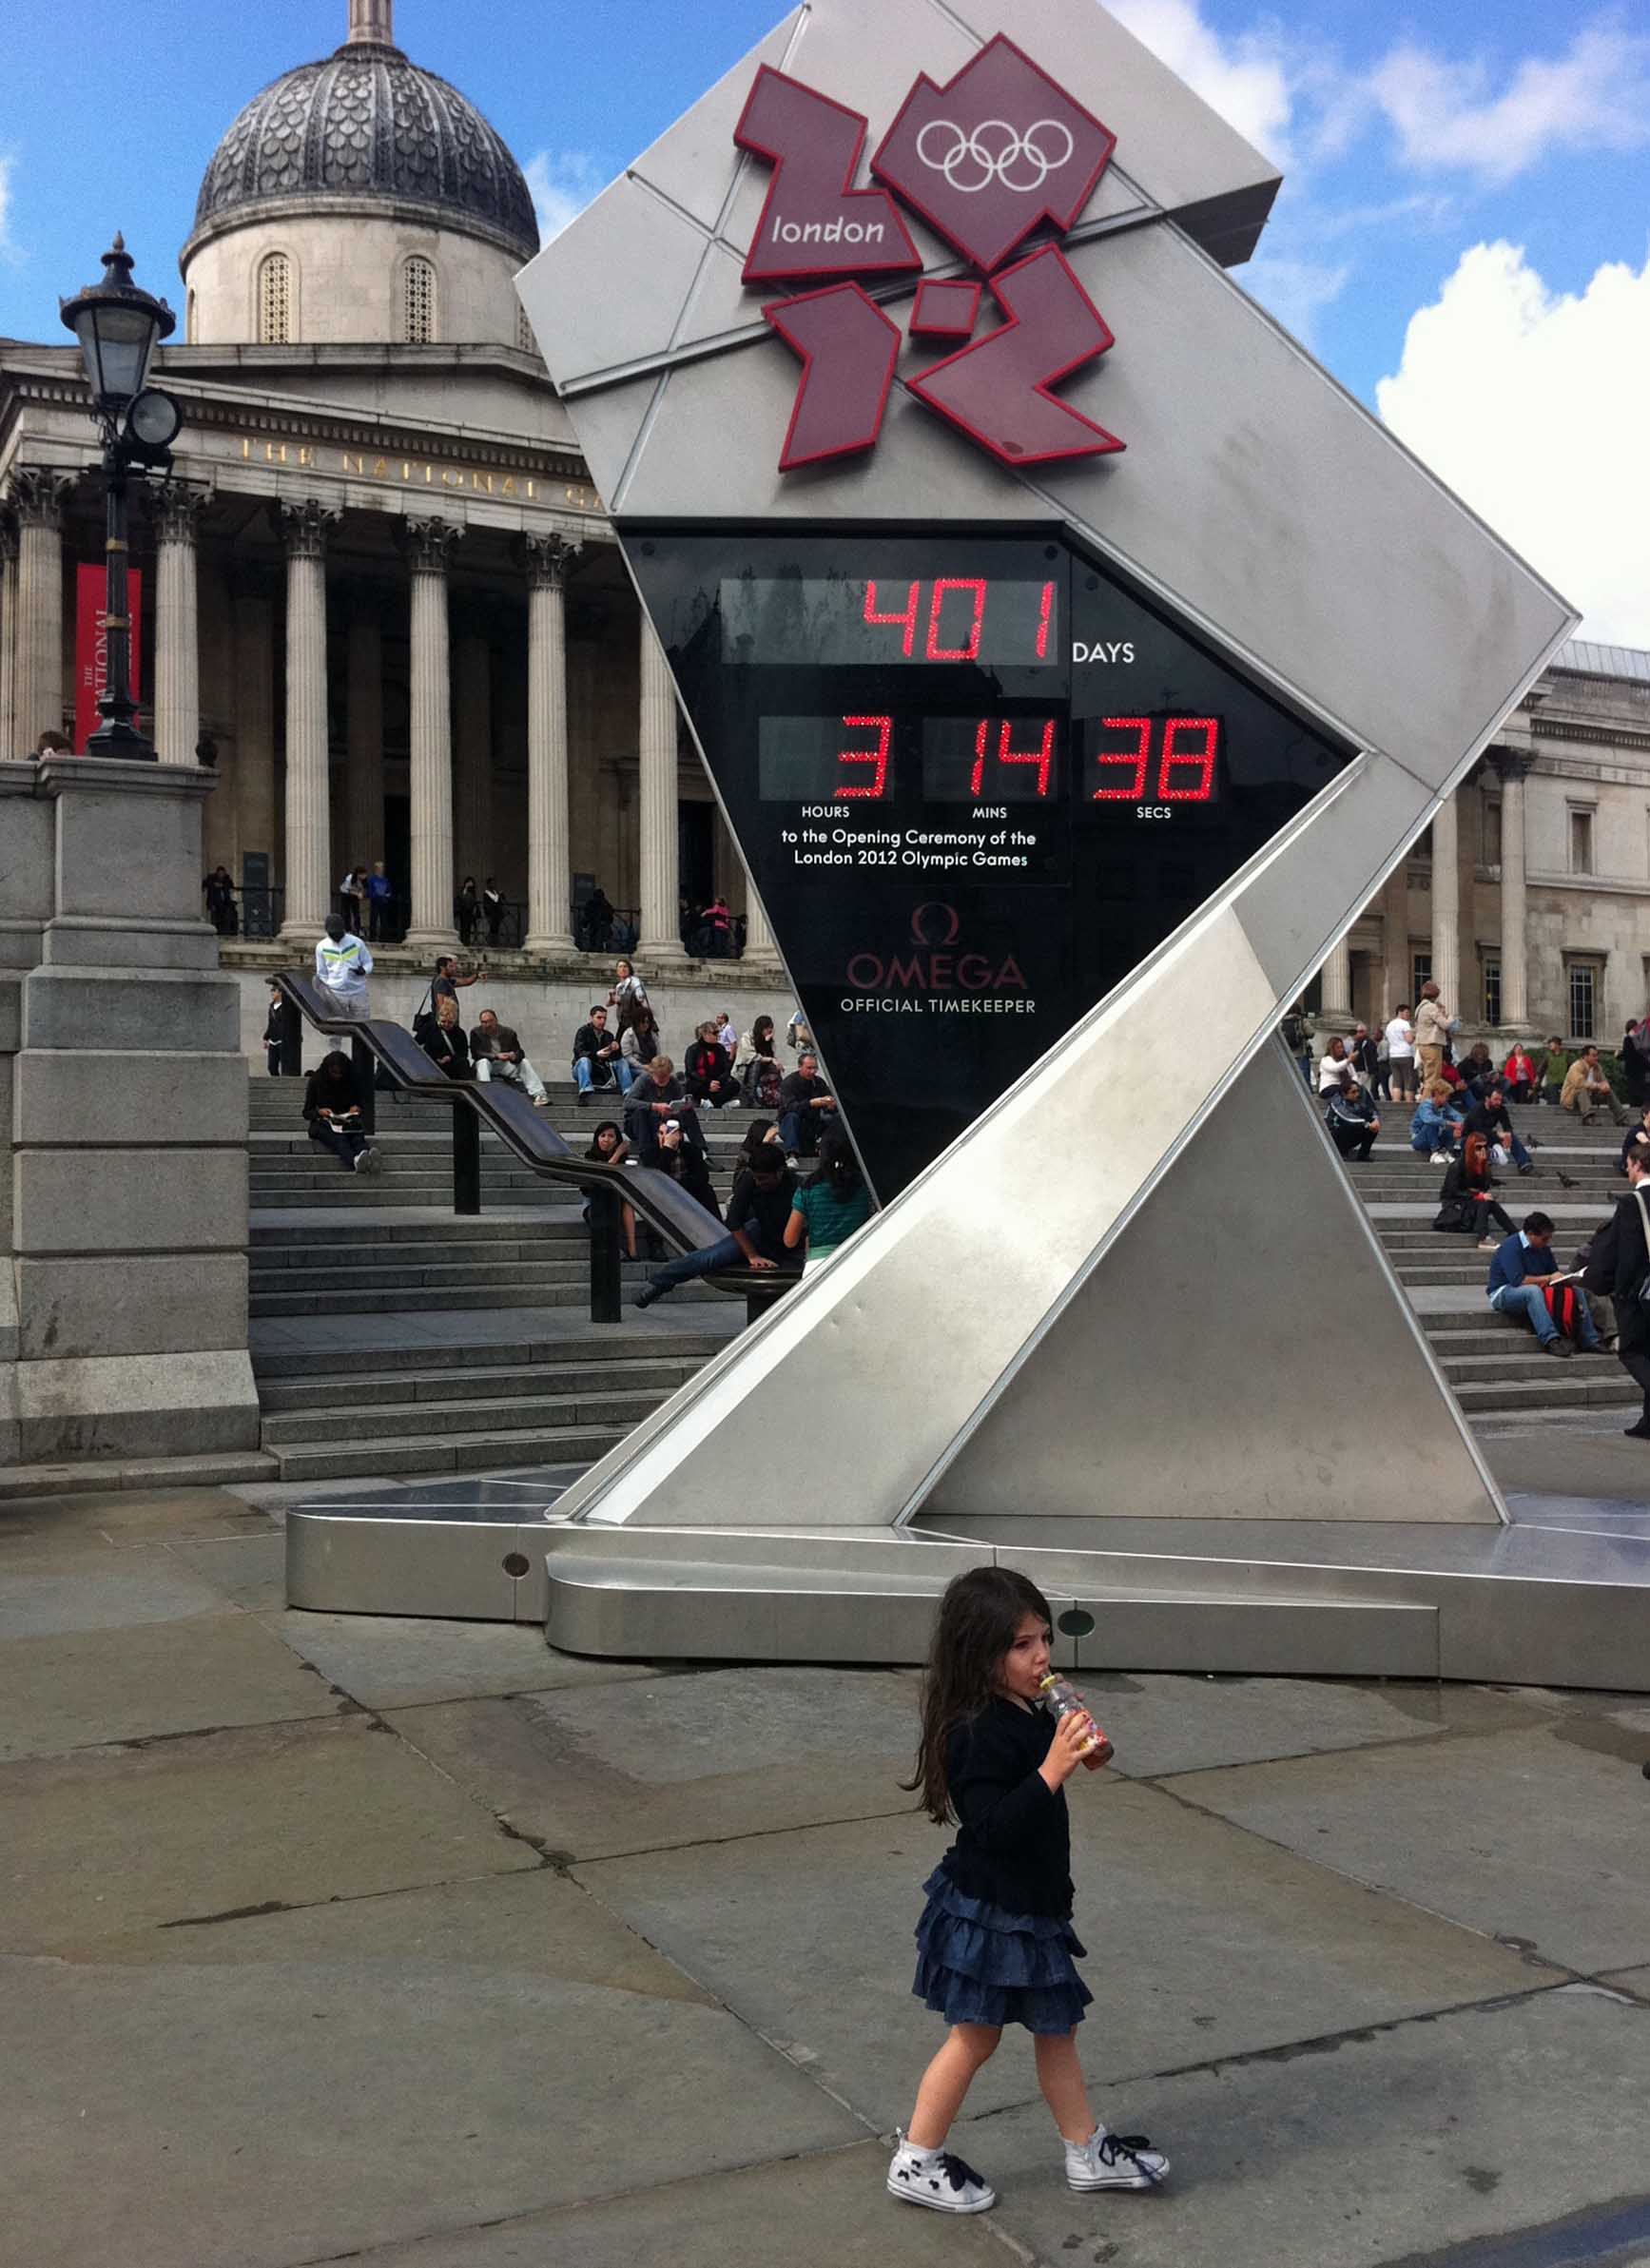 Large digital clock in a city square